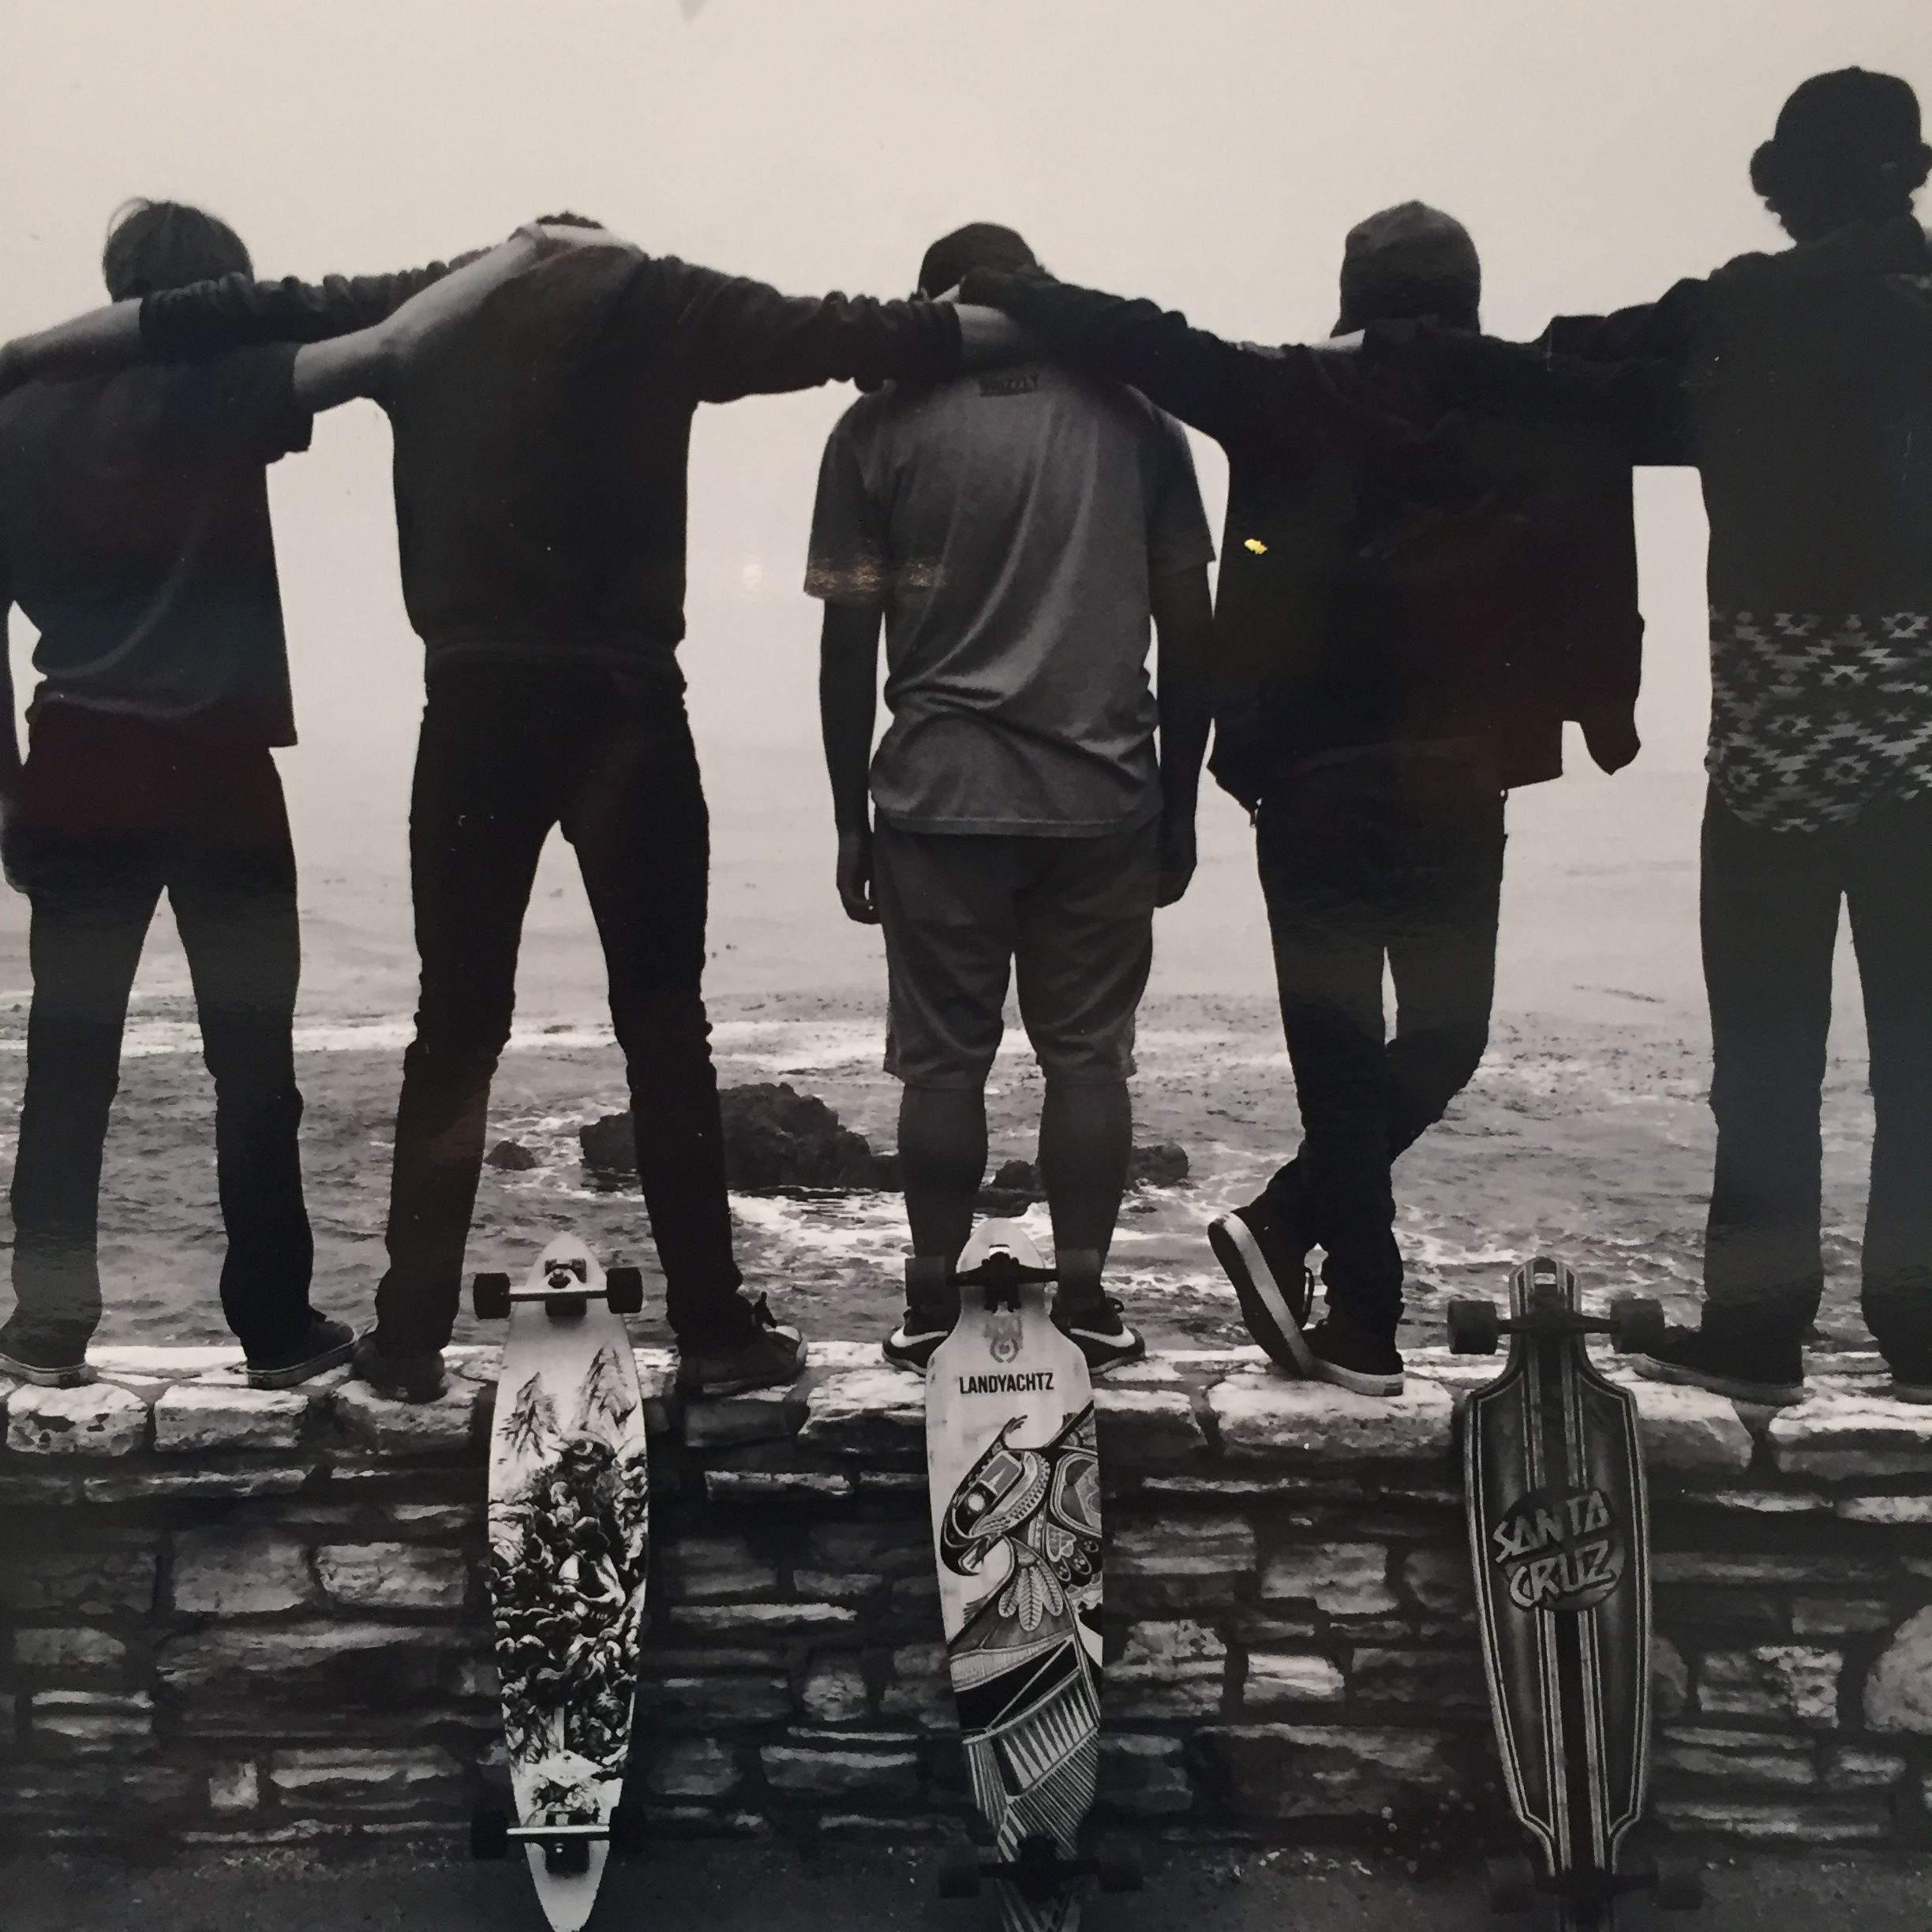 Black and white photo of three people with skateboards standing on brick wall facing the ocean